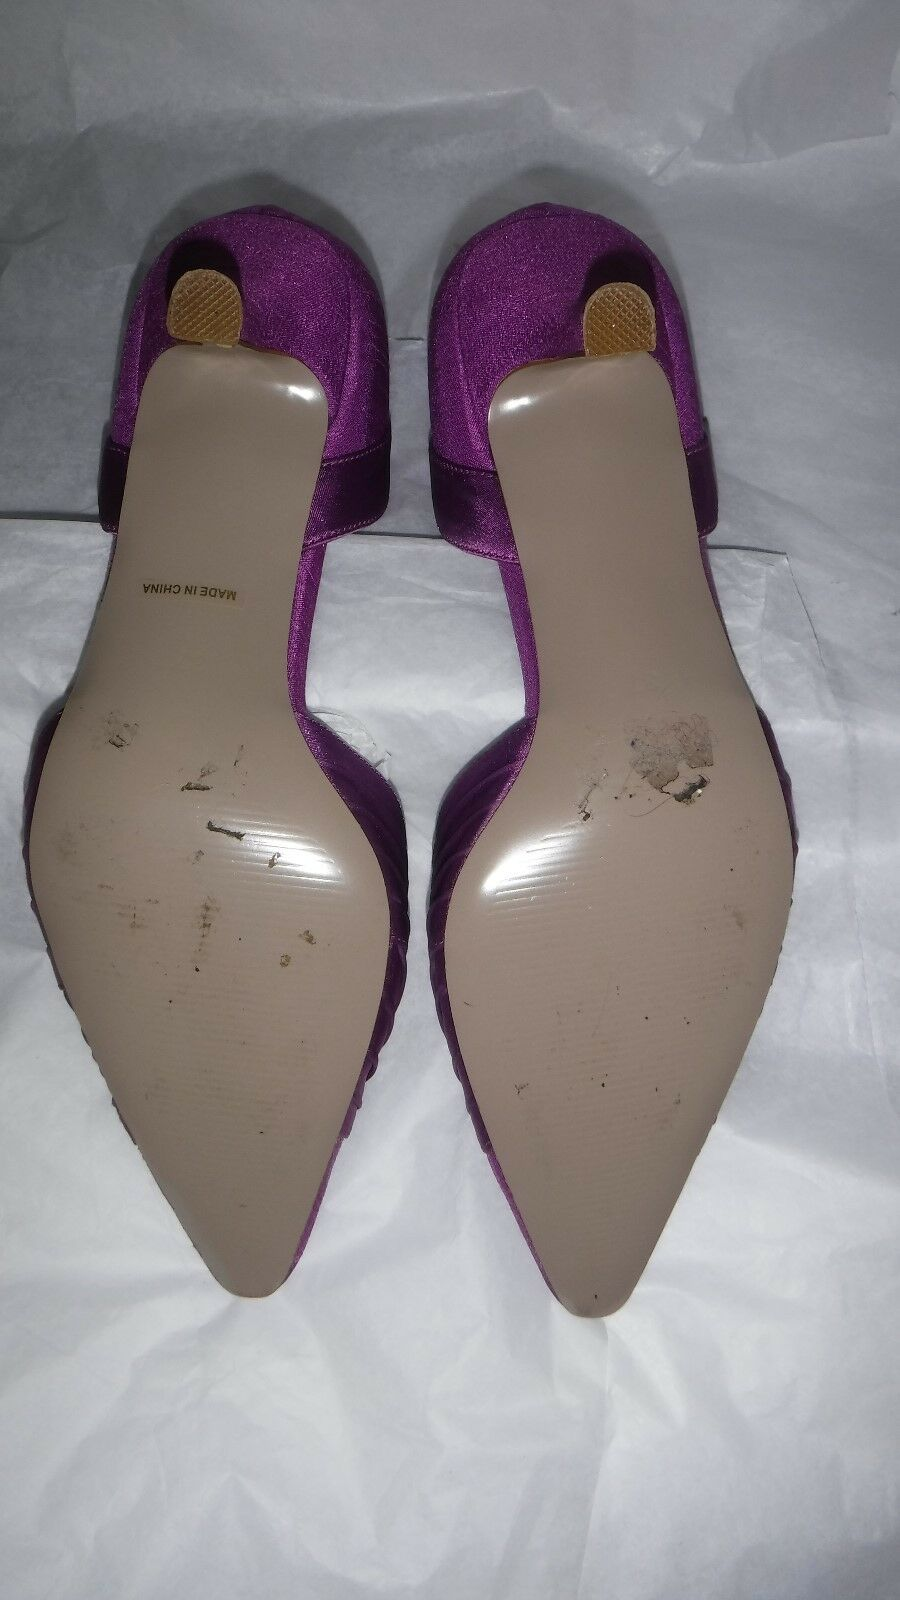 JACQUES VERT Schuhe LIGHT PURPLE SATIN PLEAT Schuhe VERT EU 37 UK 4 & MATCHING BAG cb606d